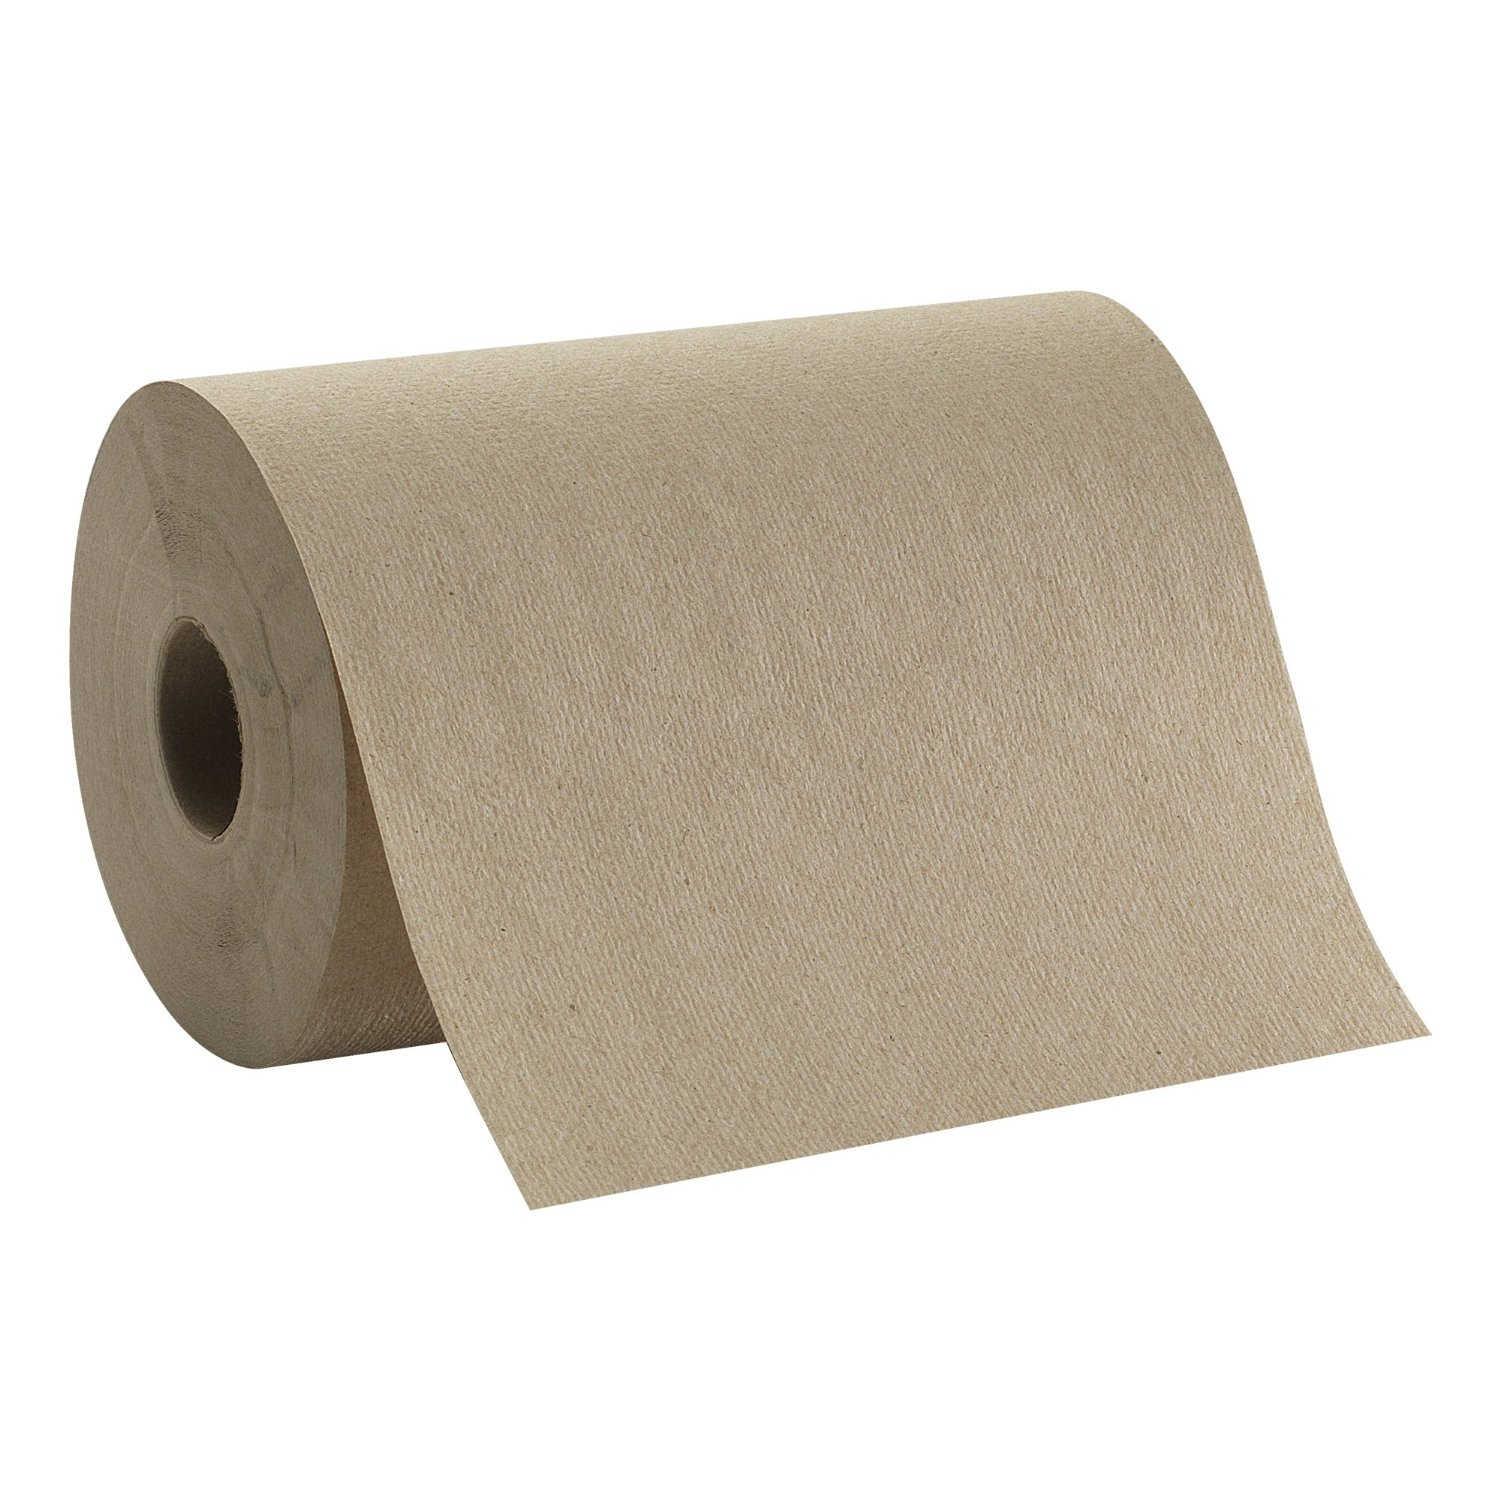 350' ACCLAIM BROWN ROLL TOWEL   12 ROLLS/CS